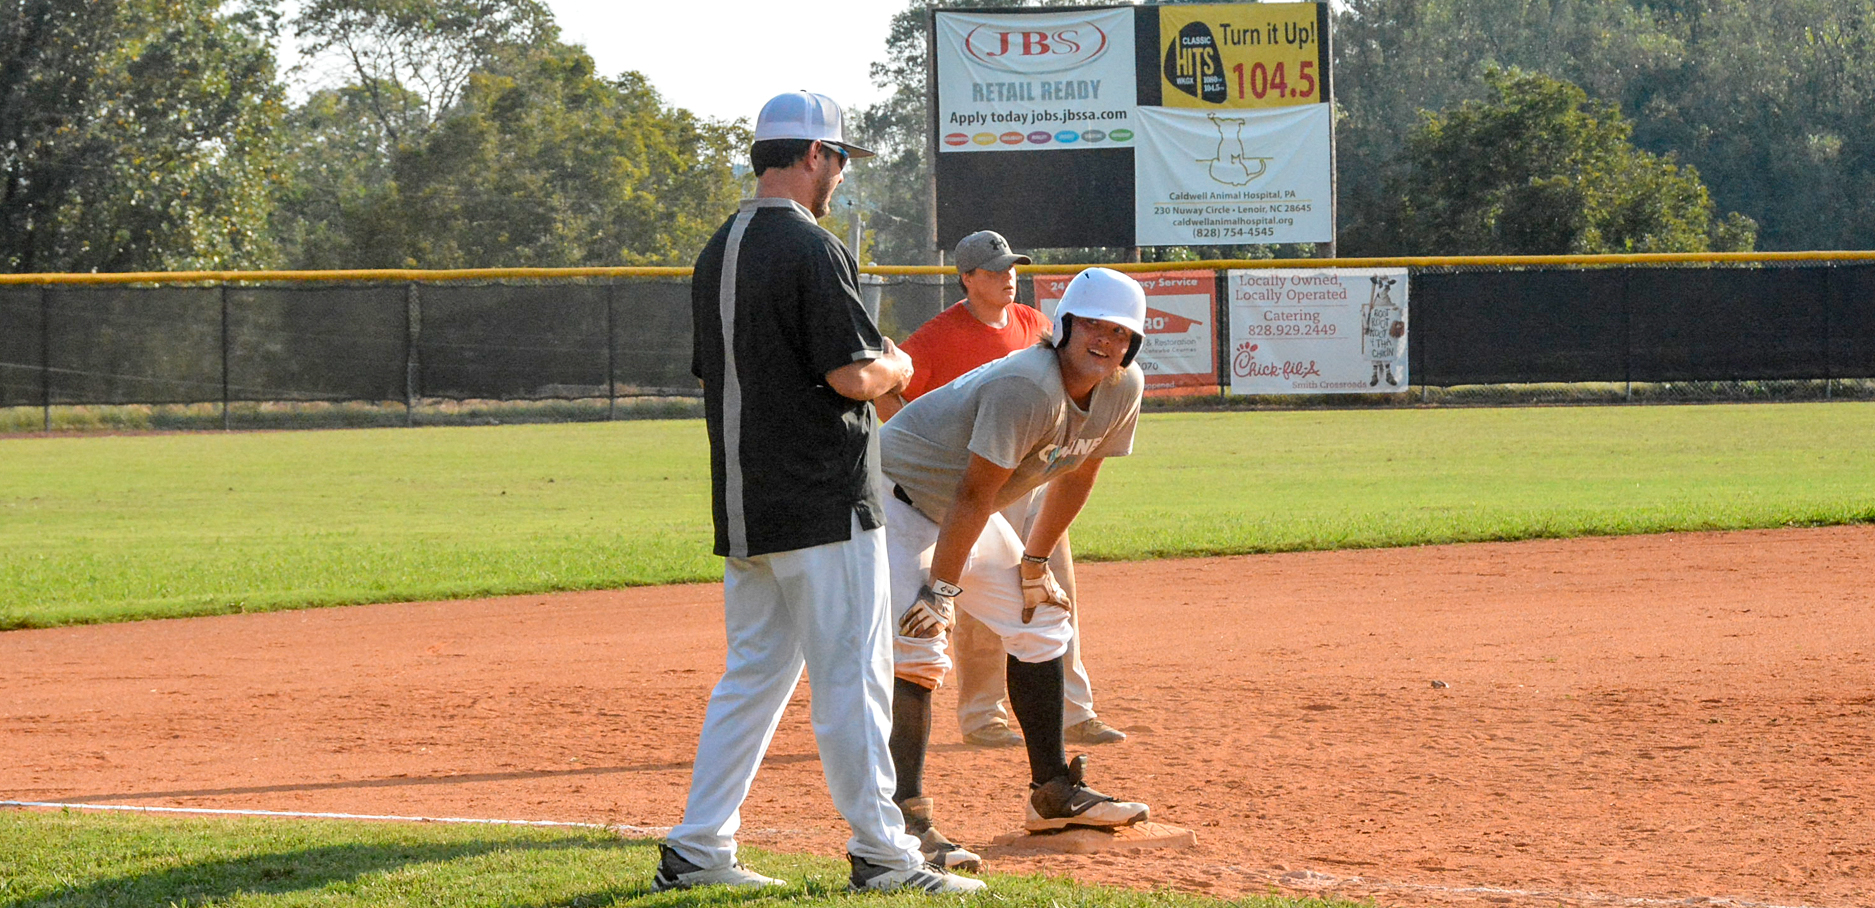 Combine Academy Baseball Game